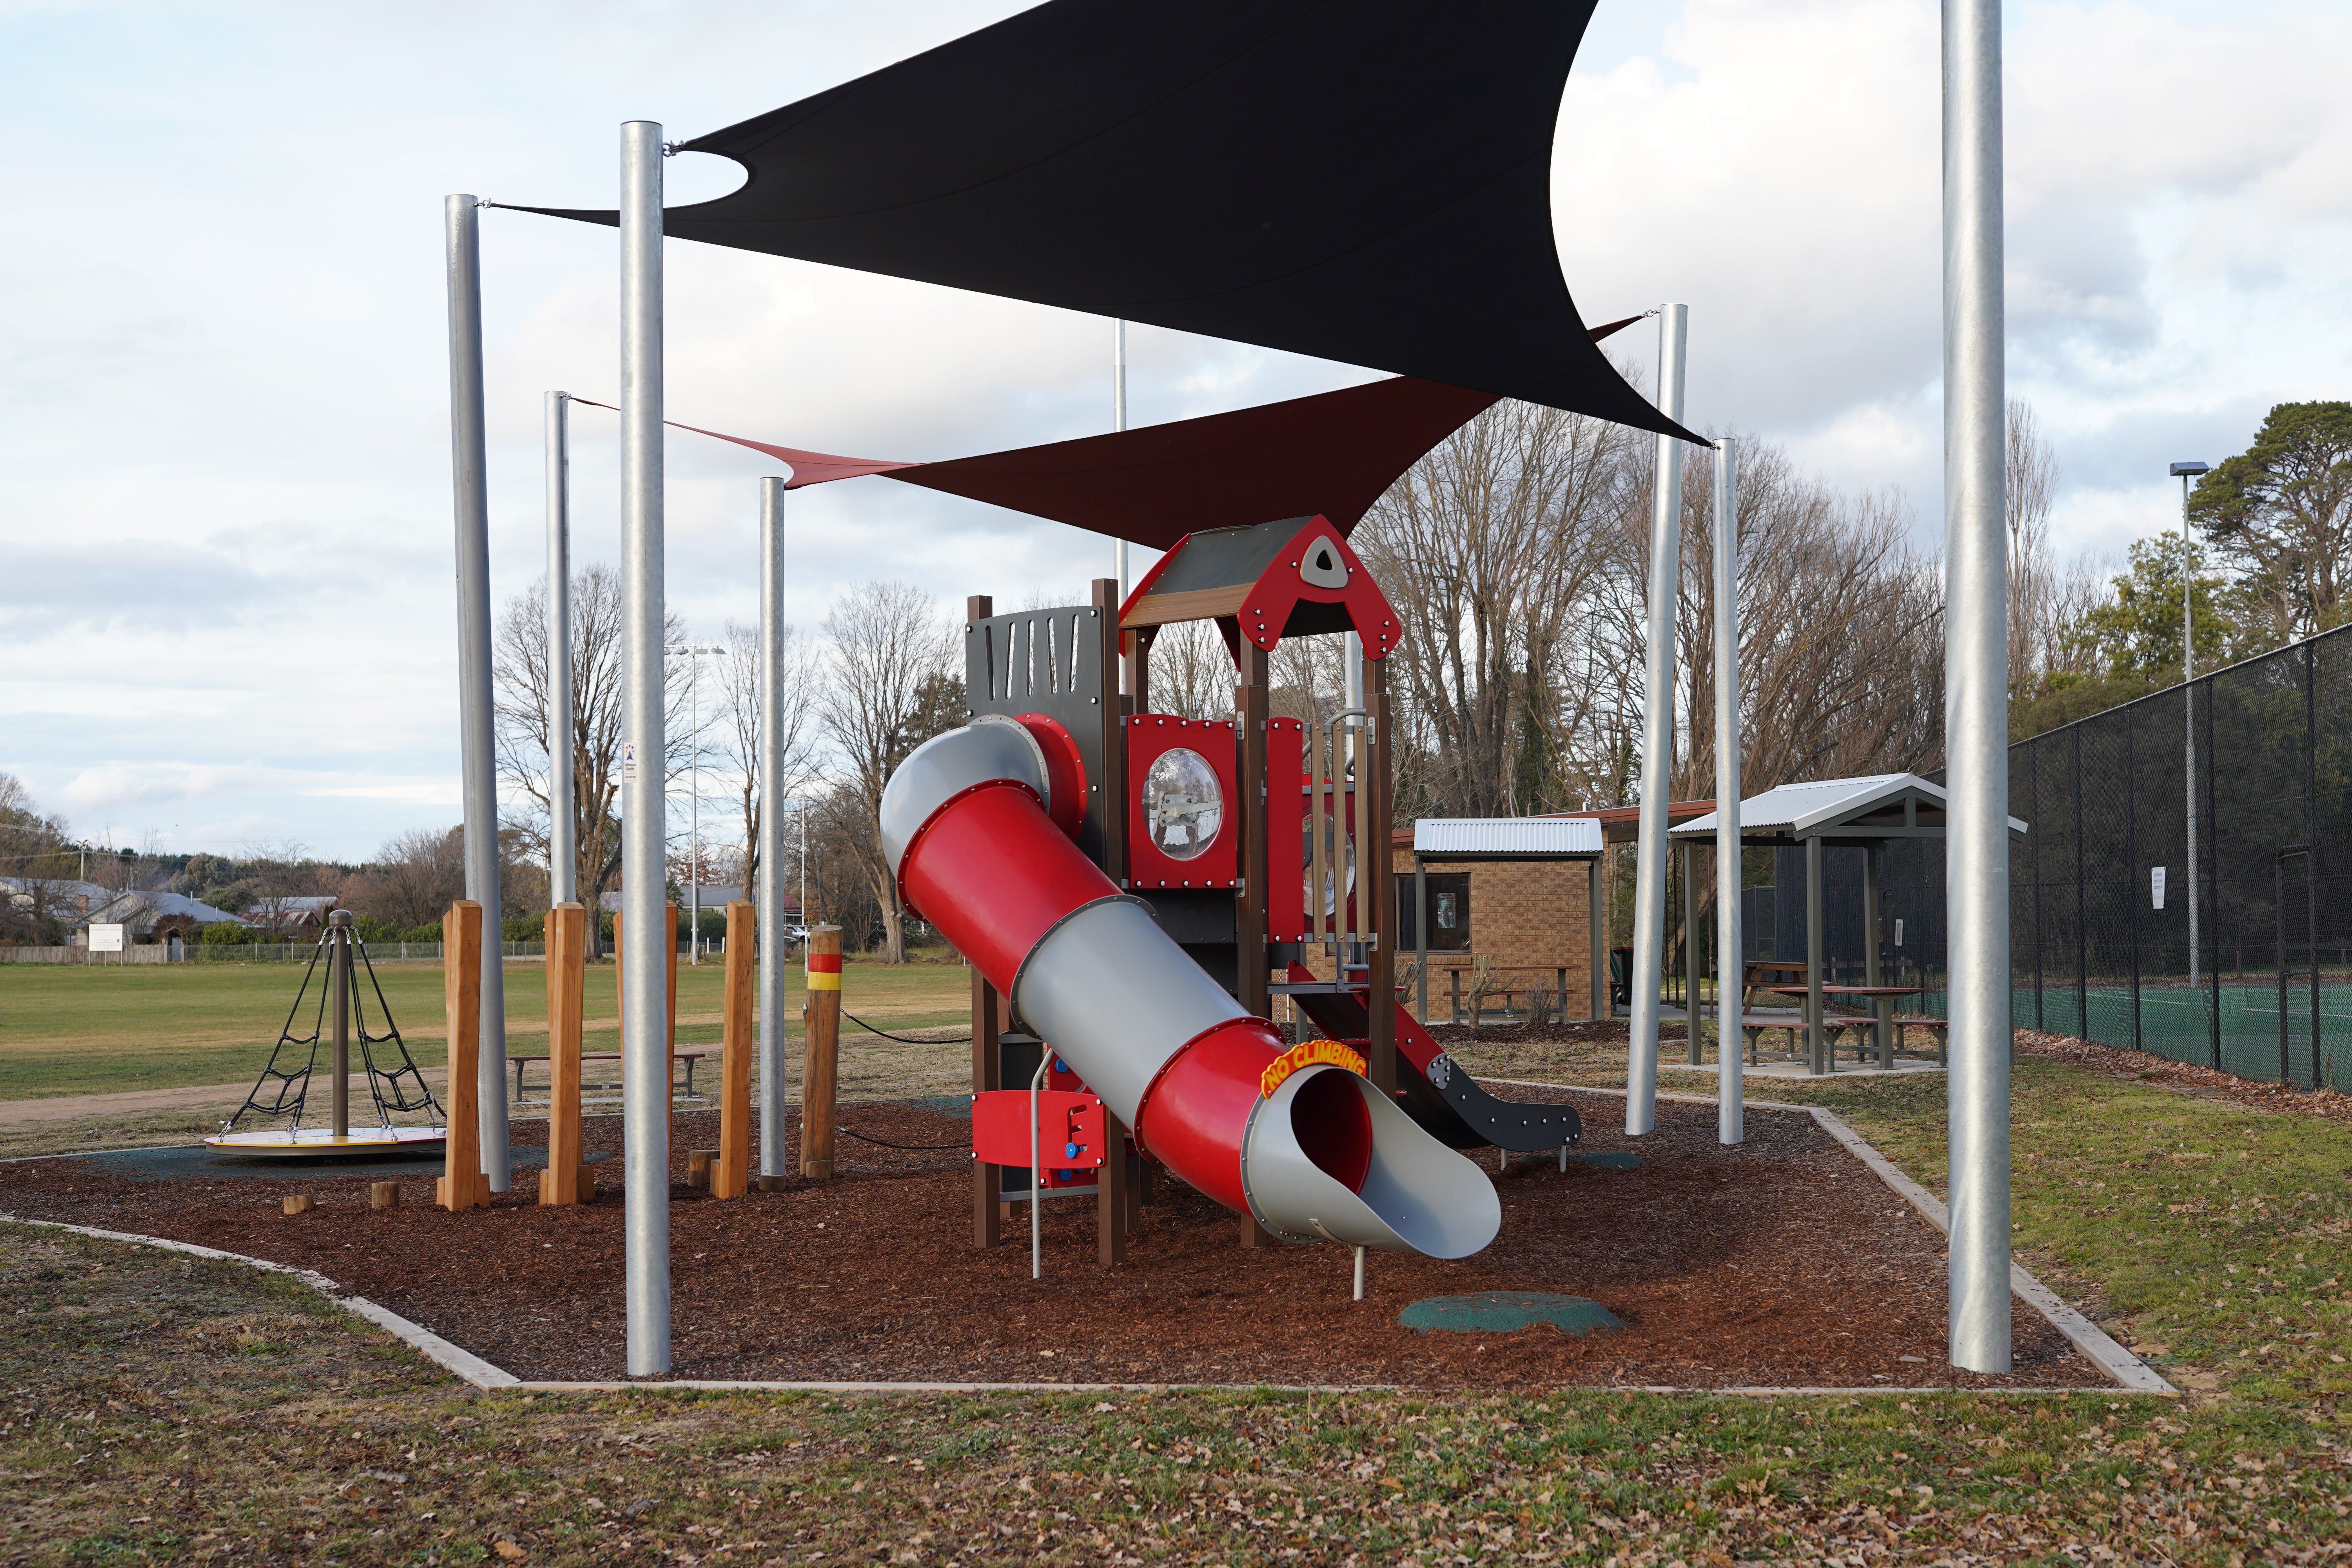 Braidwood Recreation Grounds and Playground - eAccommodation